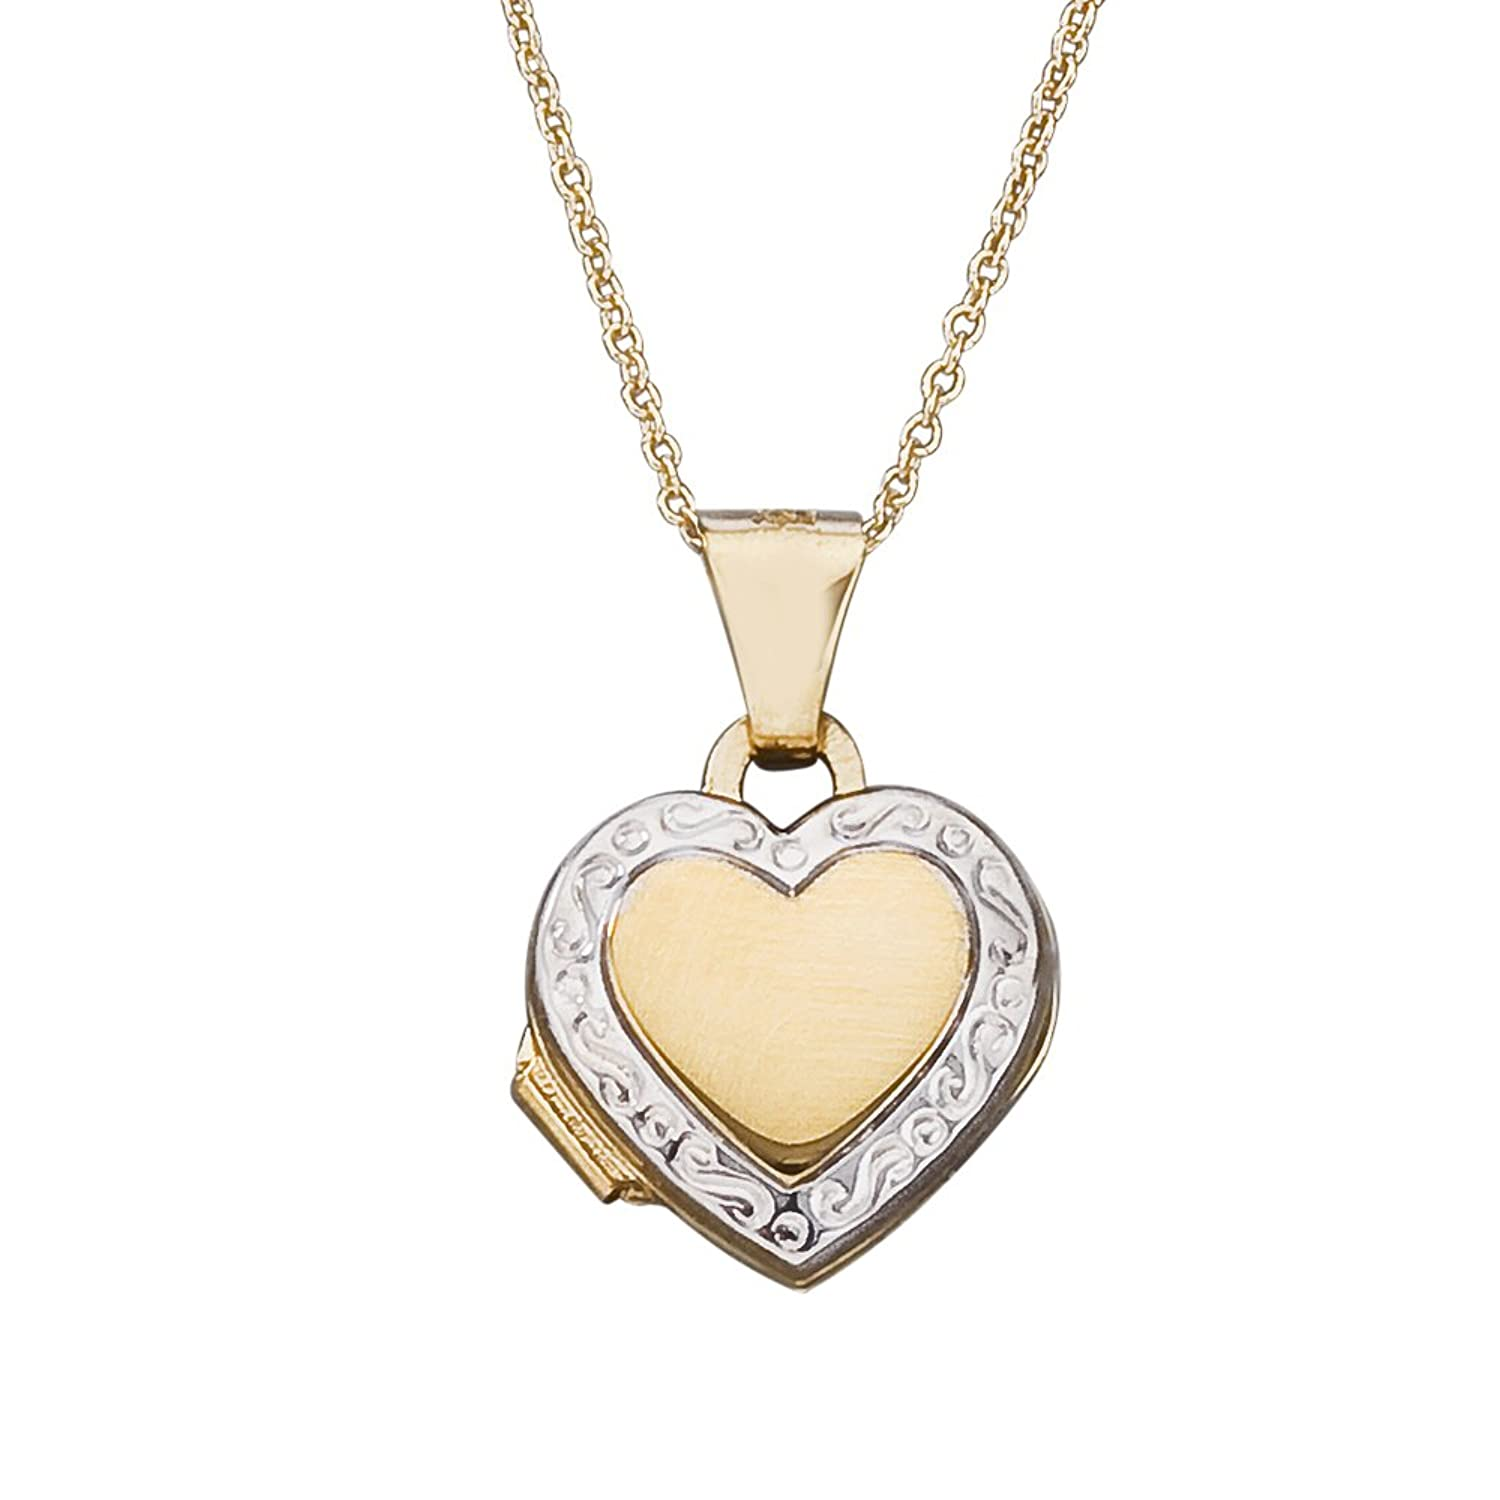 necklace for pendant on item in pendants from color romantic gold women locket heart valentines plated gift jewelry accessories fancy